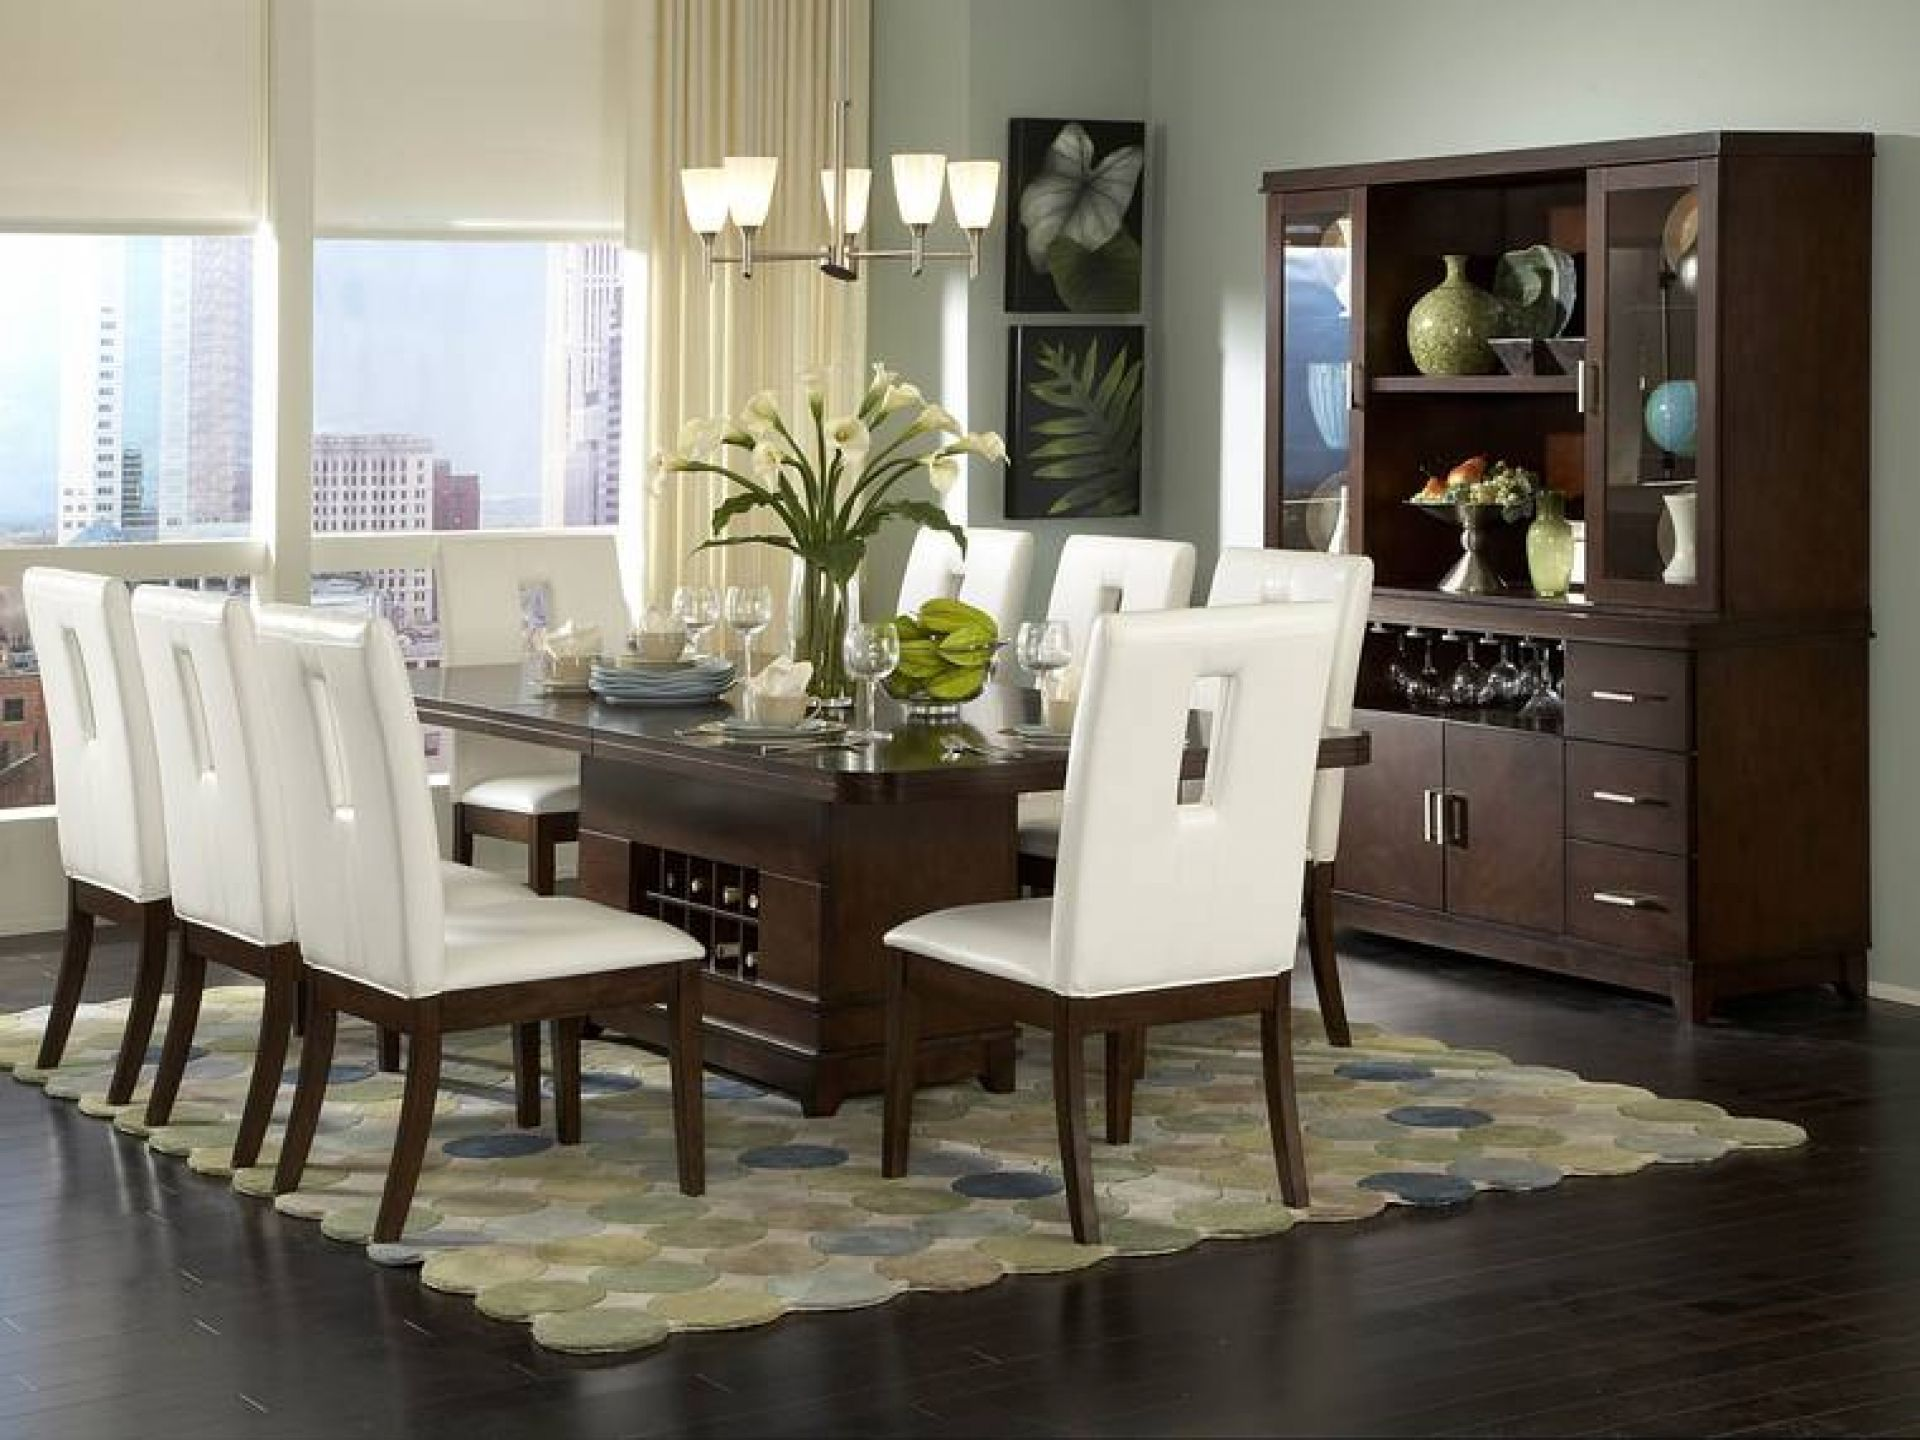 Contemporary Dining Room Chairs Simple How To Give Your Home A Budget Friendly Makeover  Dining Room Decorating Design